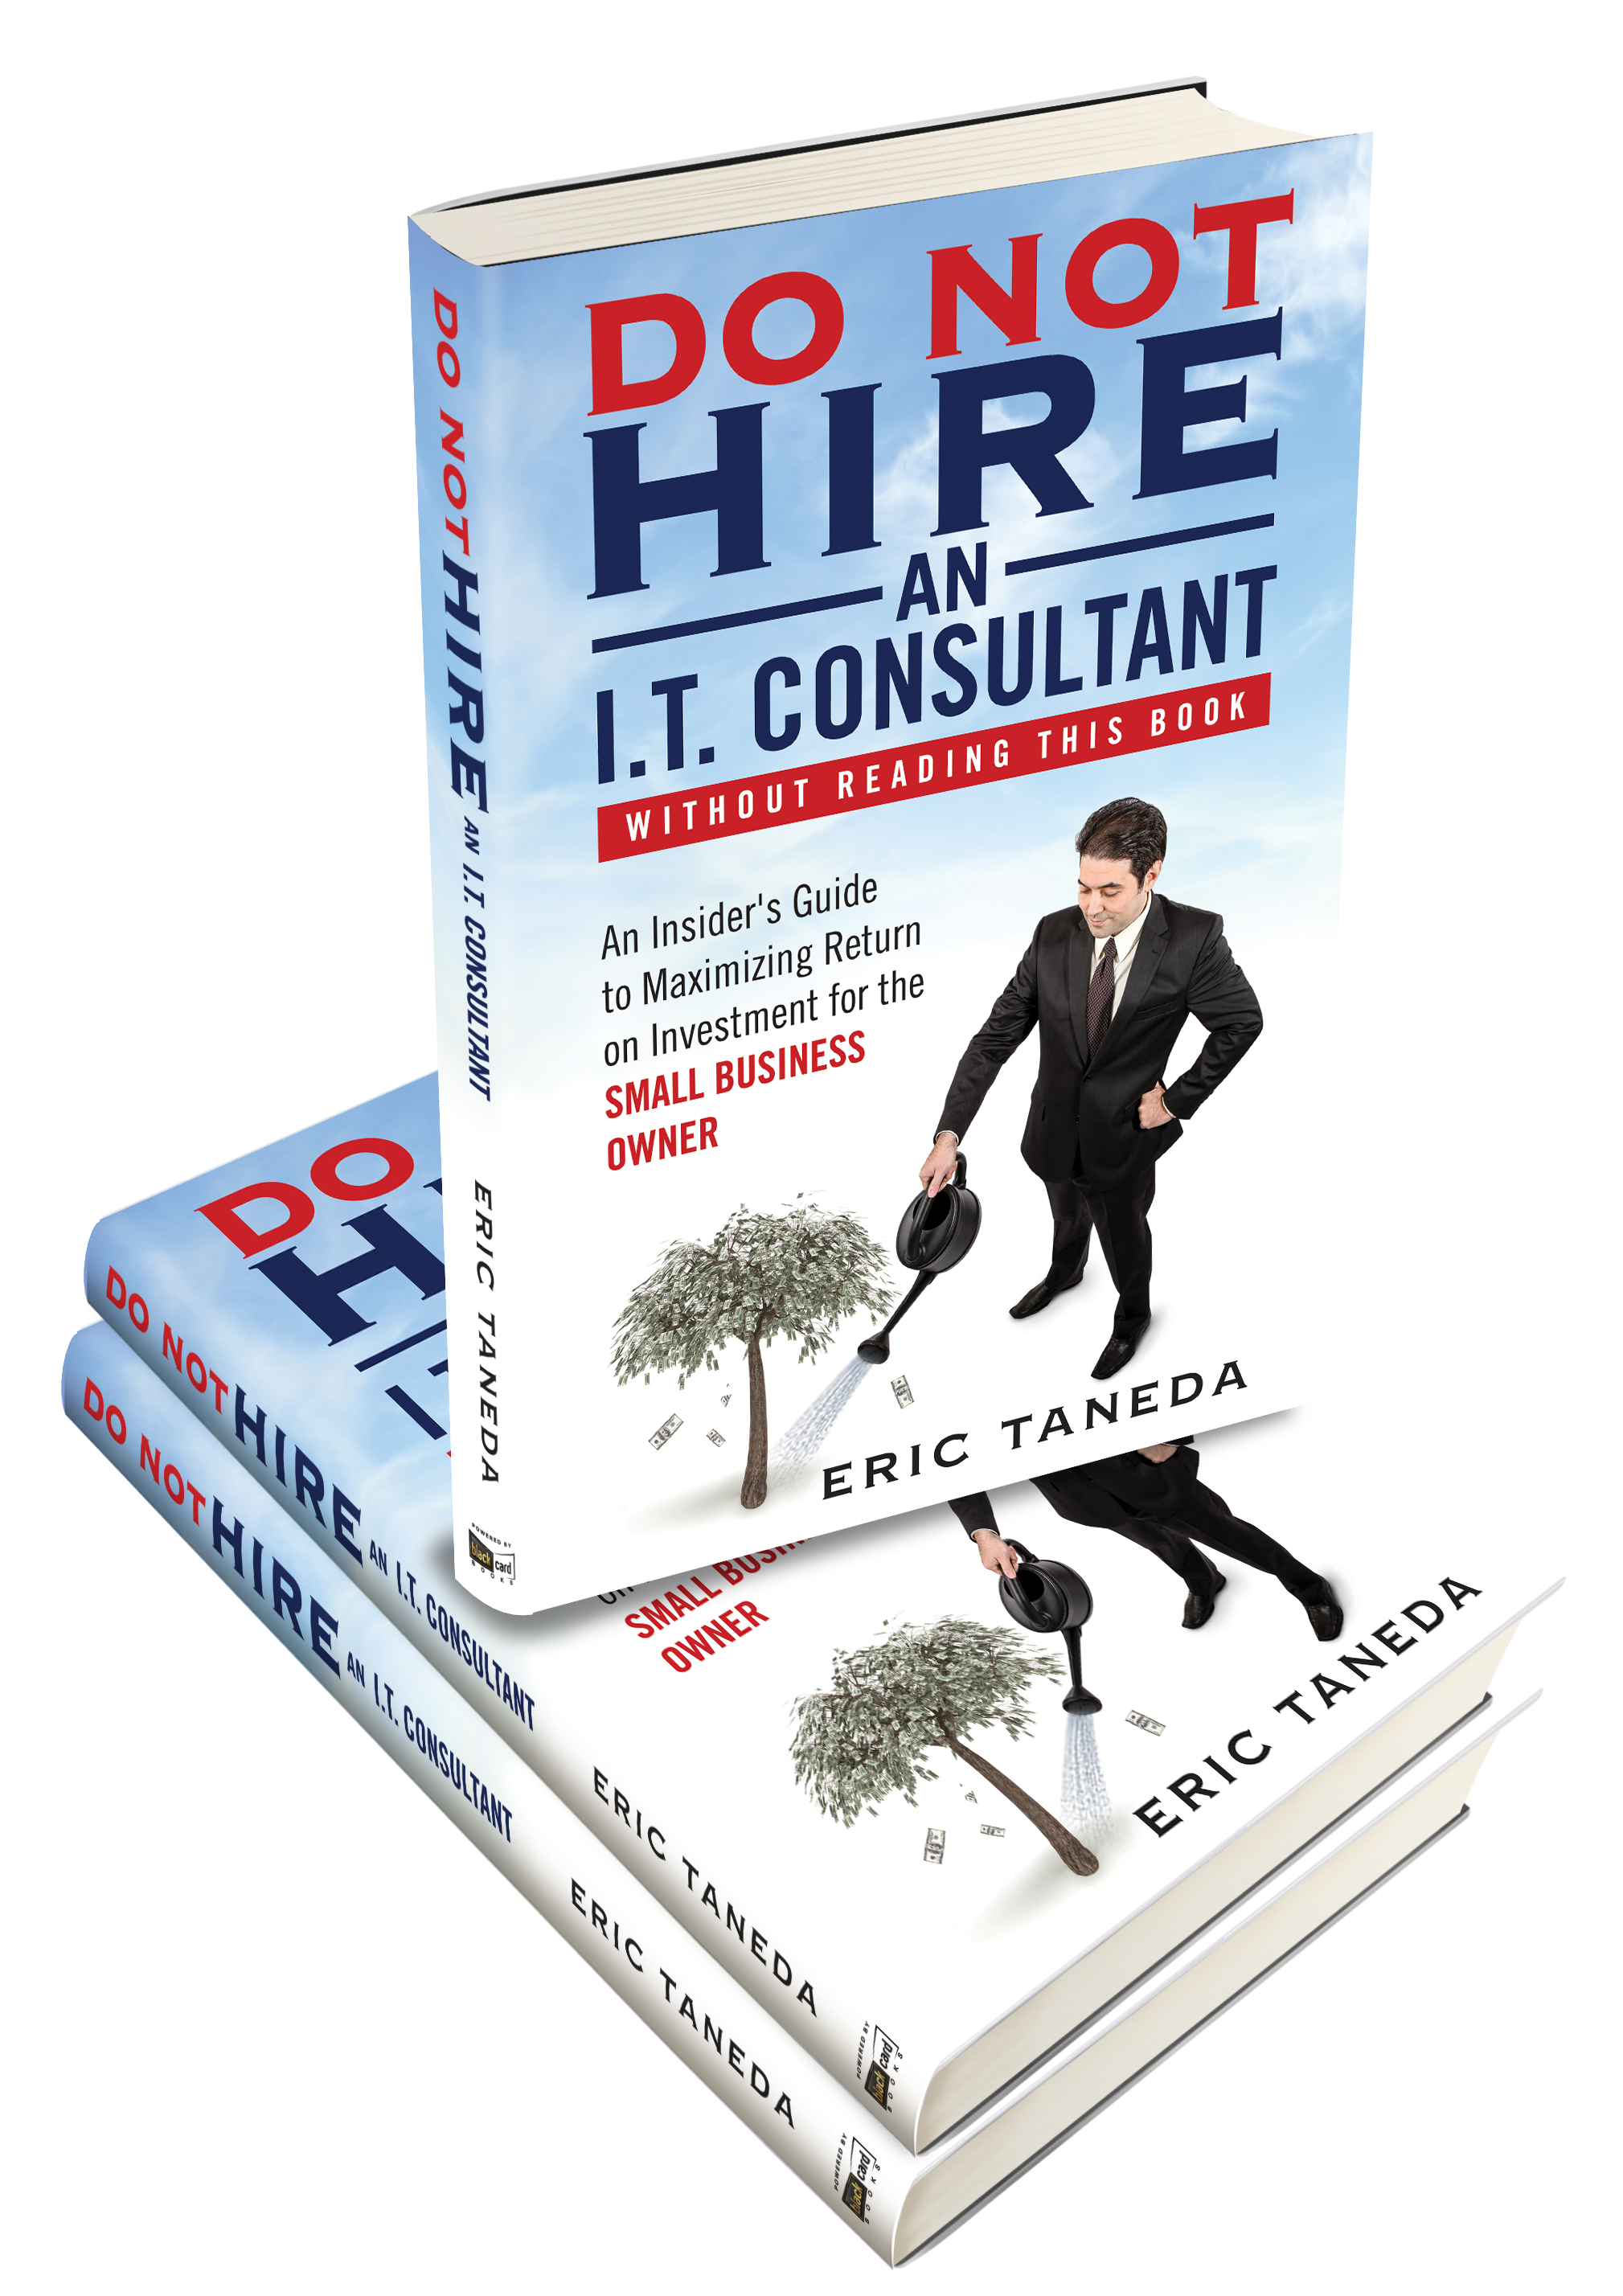 Do Not Hire an I.T. Consultant (Without Reading This Book)